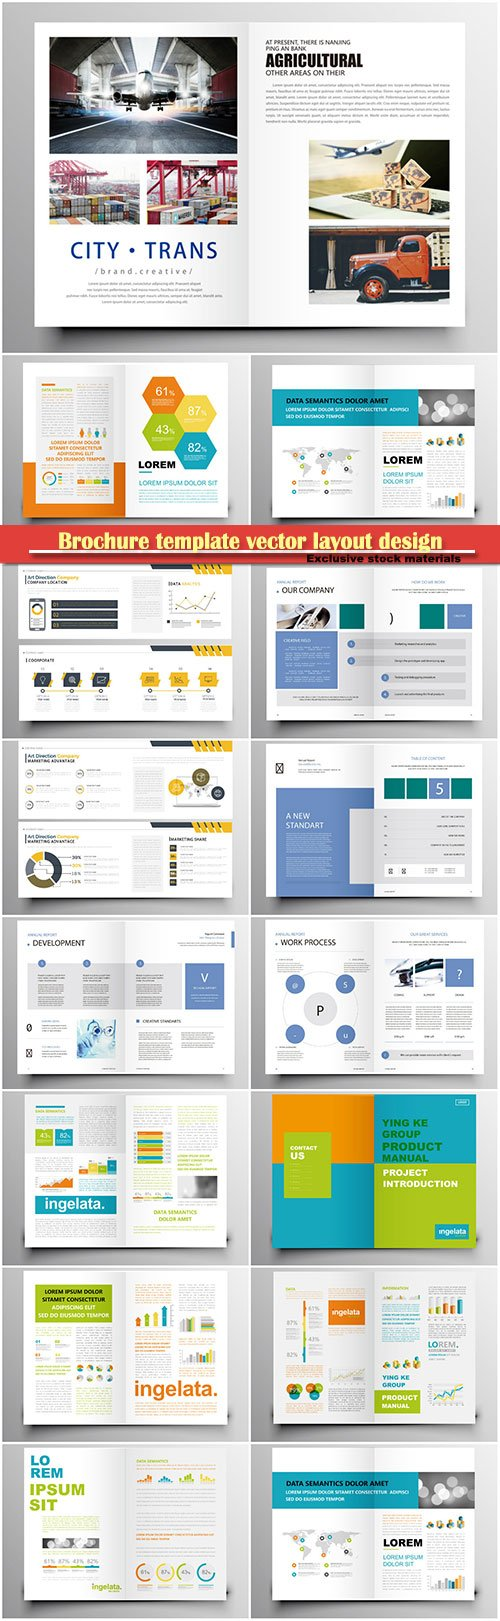 Brochure template vector layout design, corporate business annual report, magazine, flyer mockup # 133